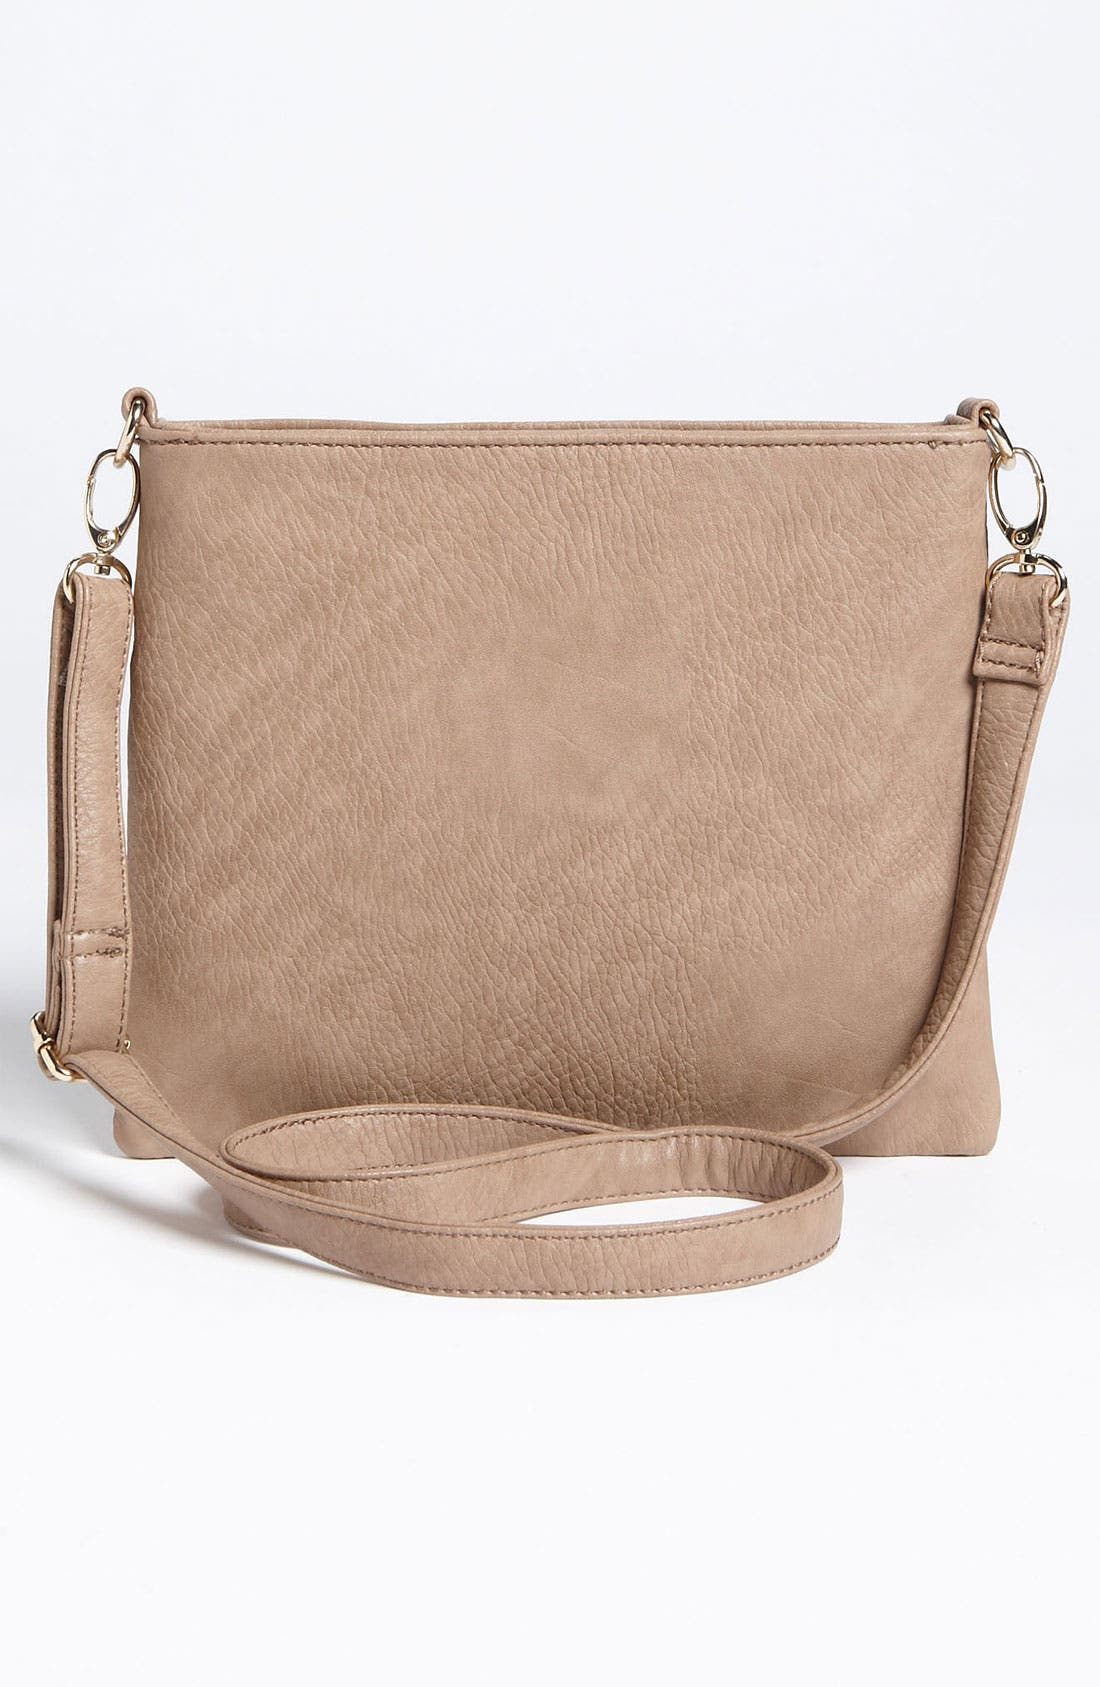 Studded Convertible Crossbody Bag,                             Alternate thumbnail 4, color,                             Taupe/ Gold